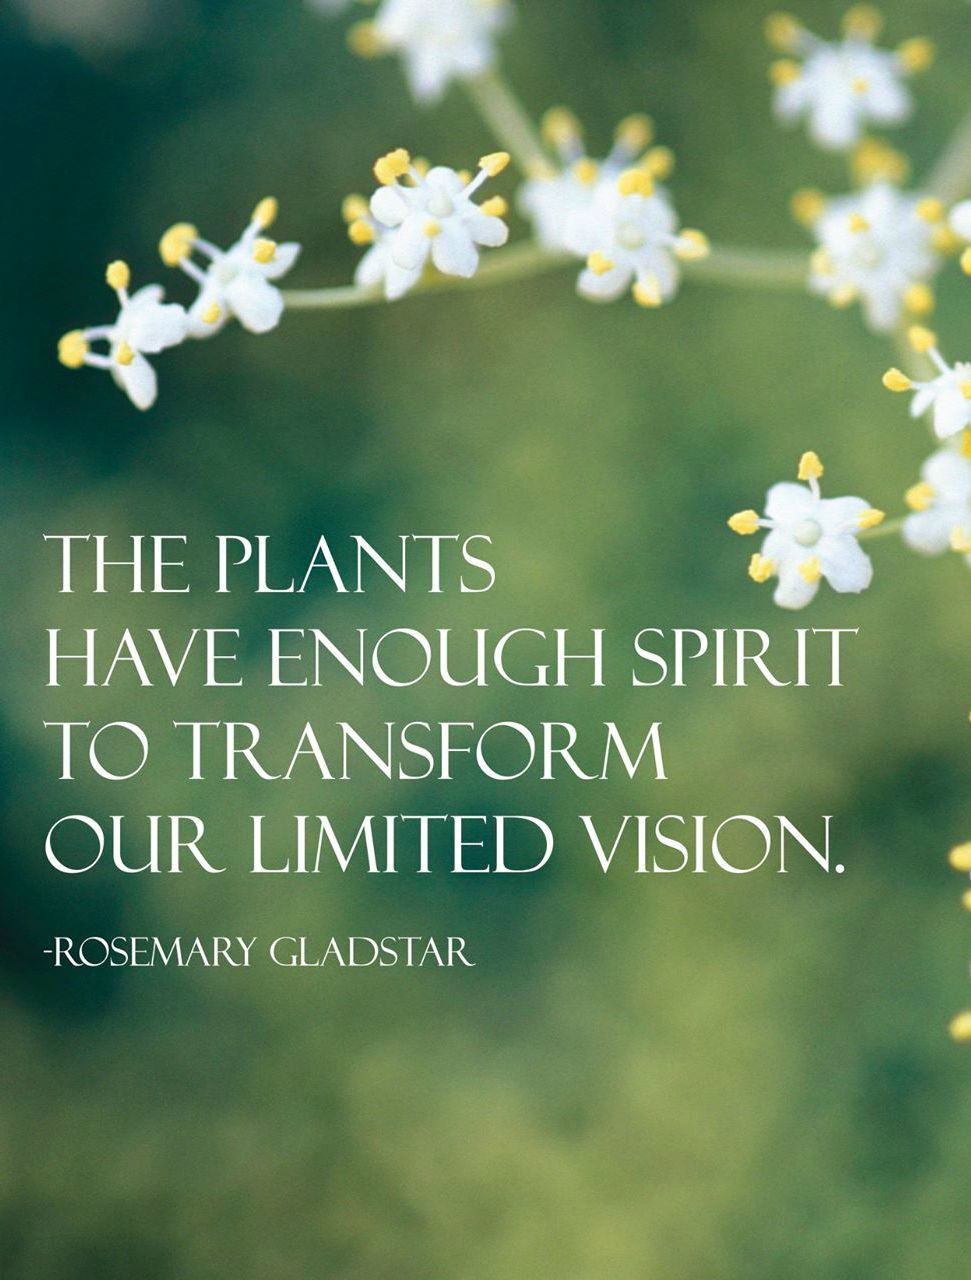 """The plants have enough spirit to transform our limited"